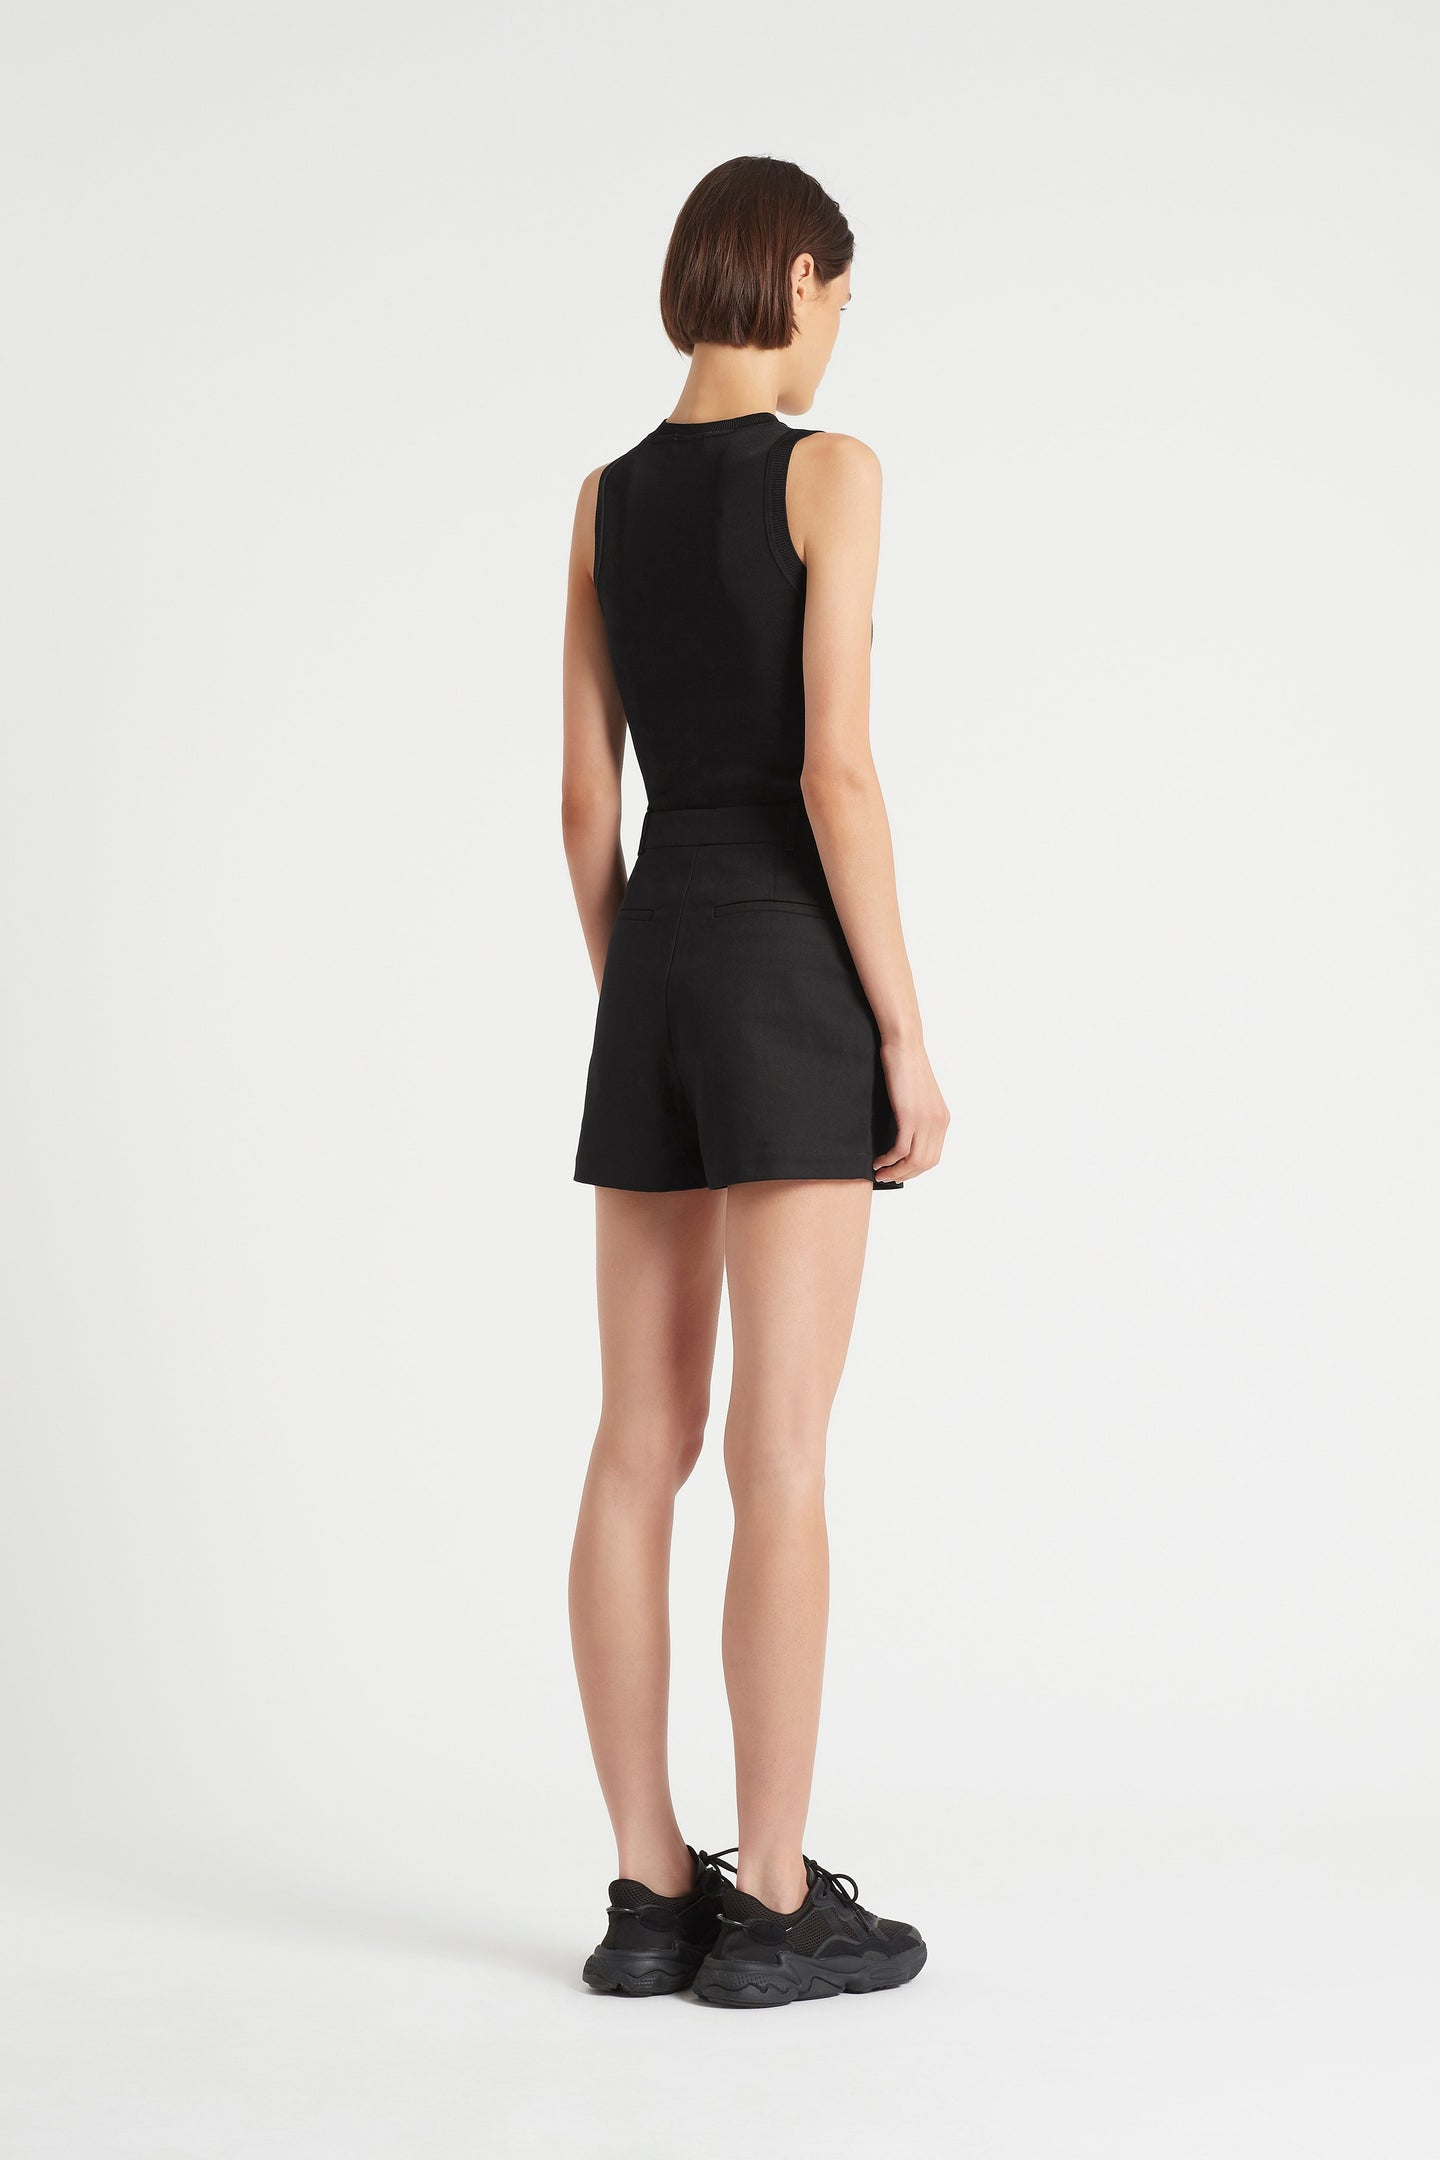 SIR the label SABINE SHORT BLACK